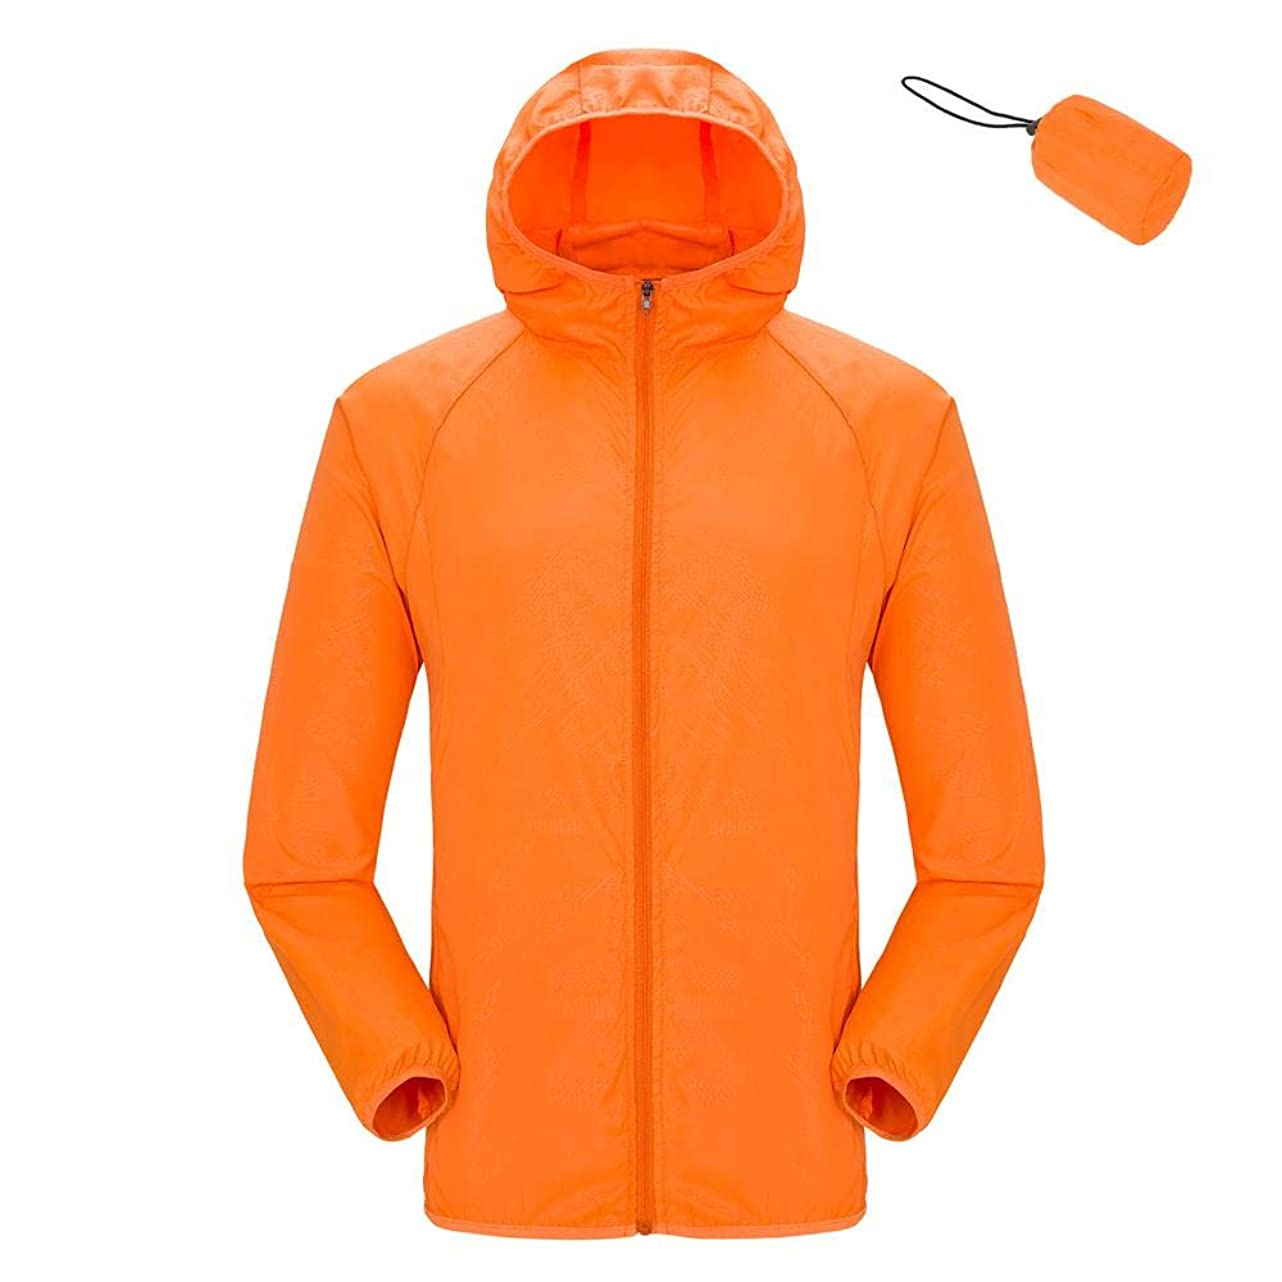 Unisex Lightweight Jacket UV Protect+Quick Dry Windproof Skin Coat for Women and Men ooz736492652935